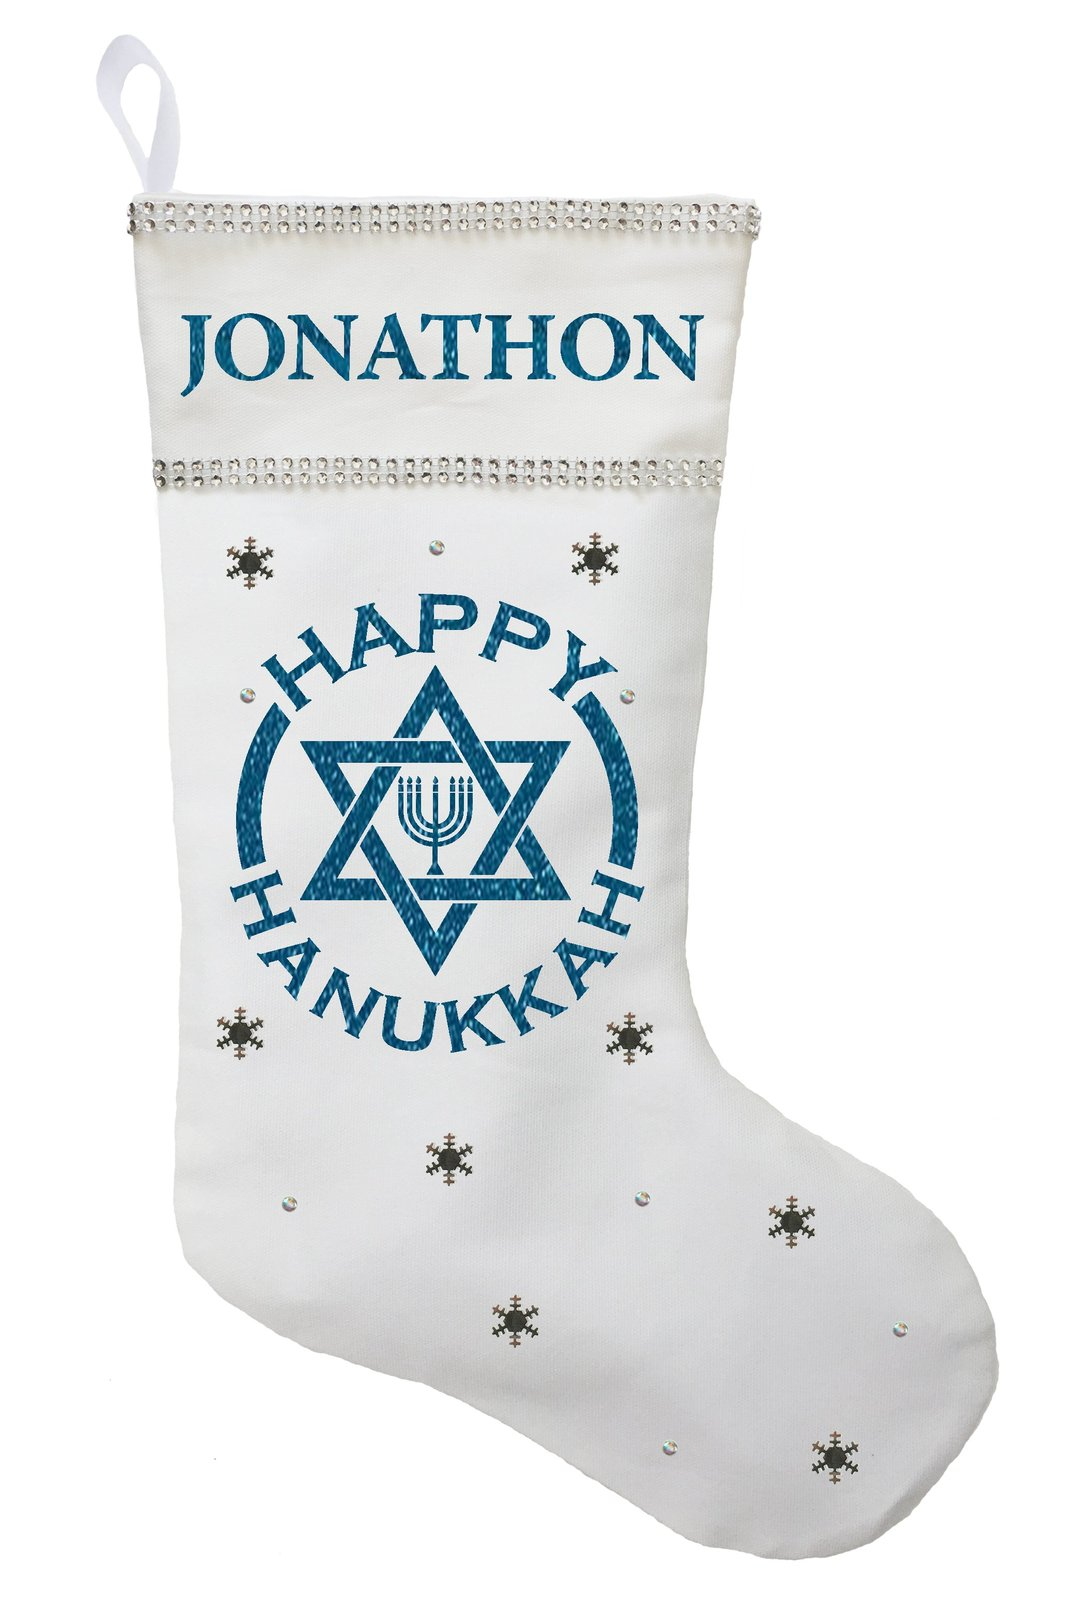 Happy Hanukkah Stocking - Personalized and Hand Made Hanukkah Stocking